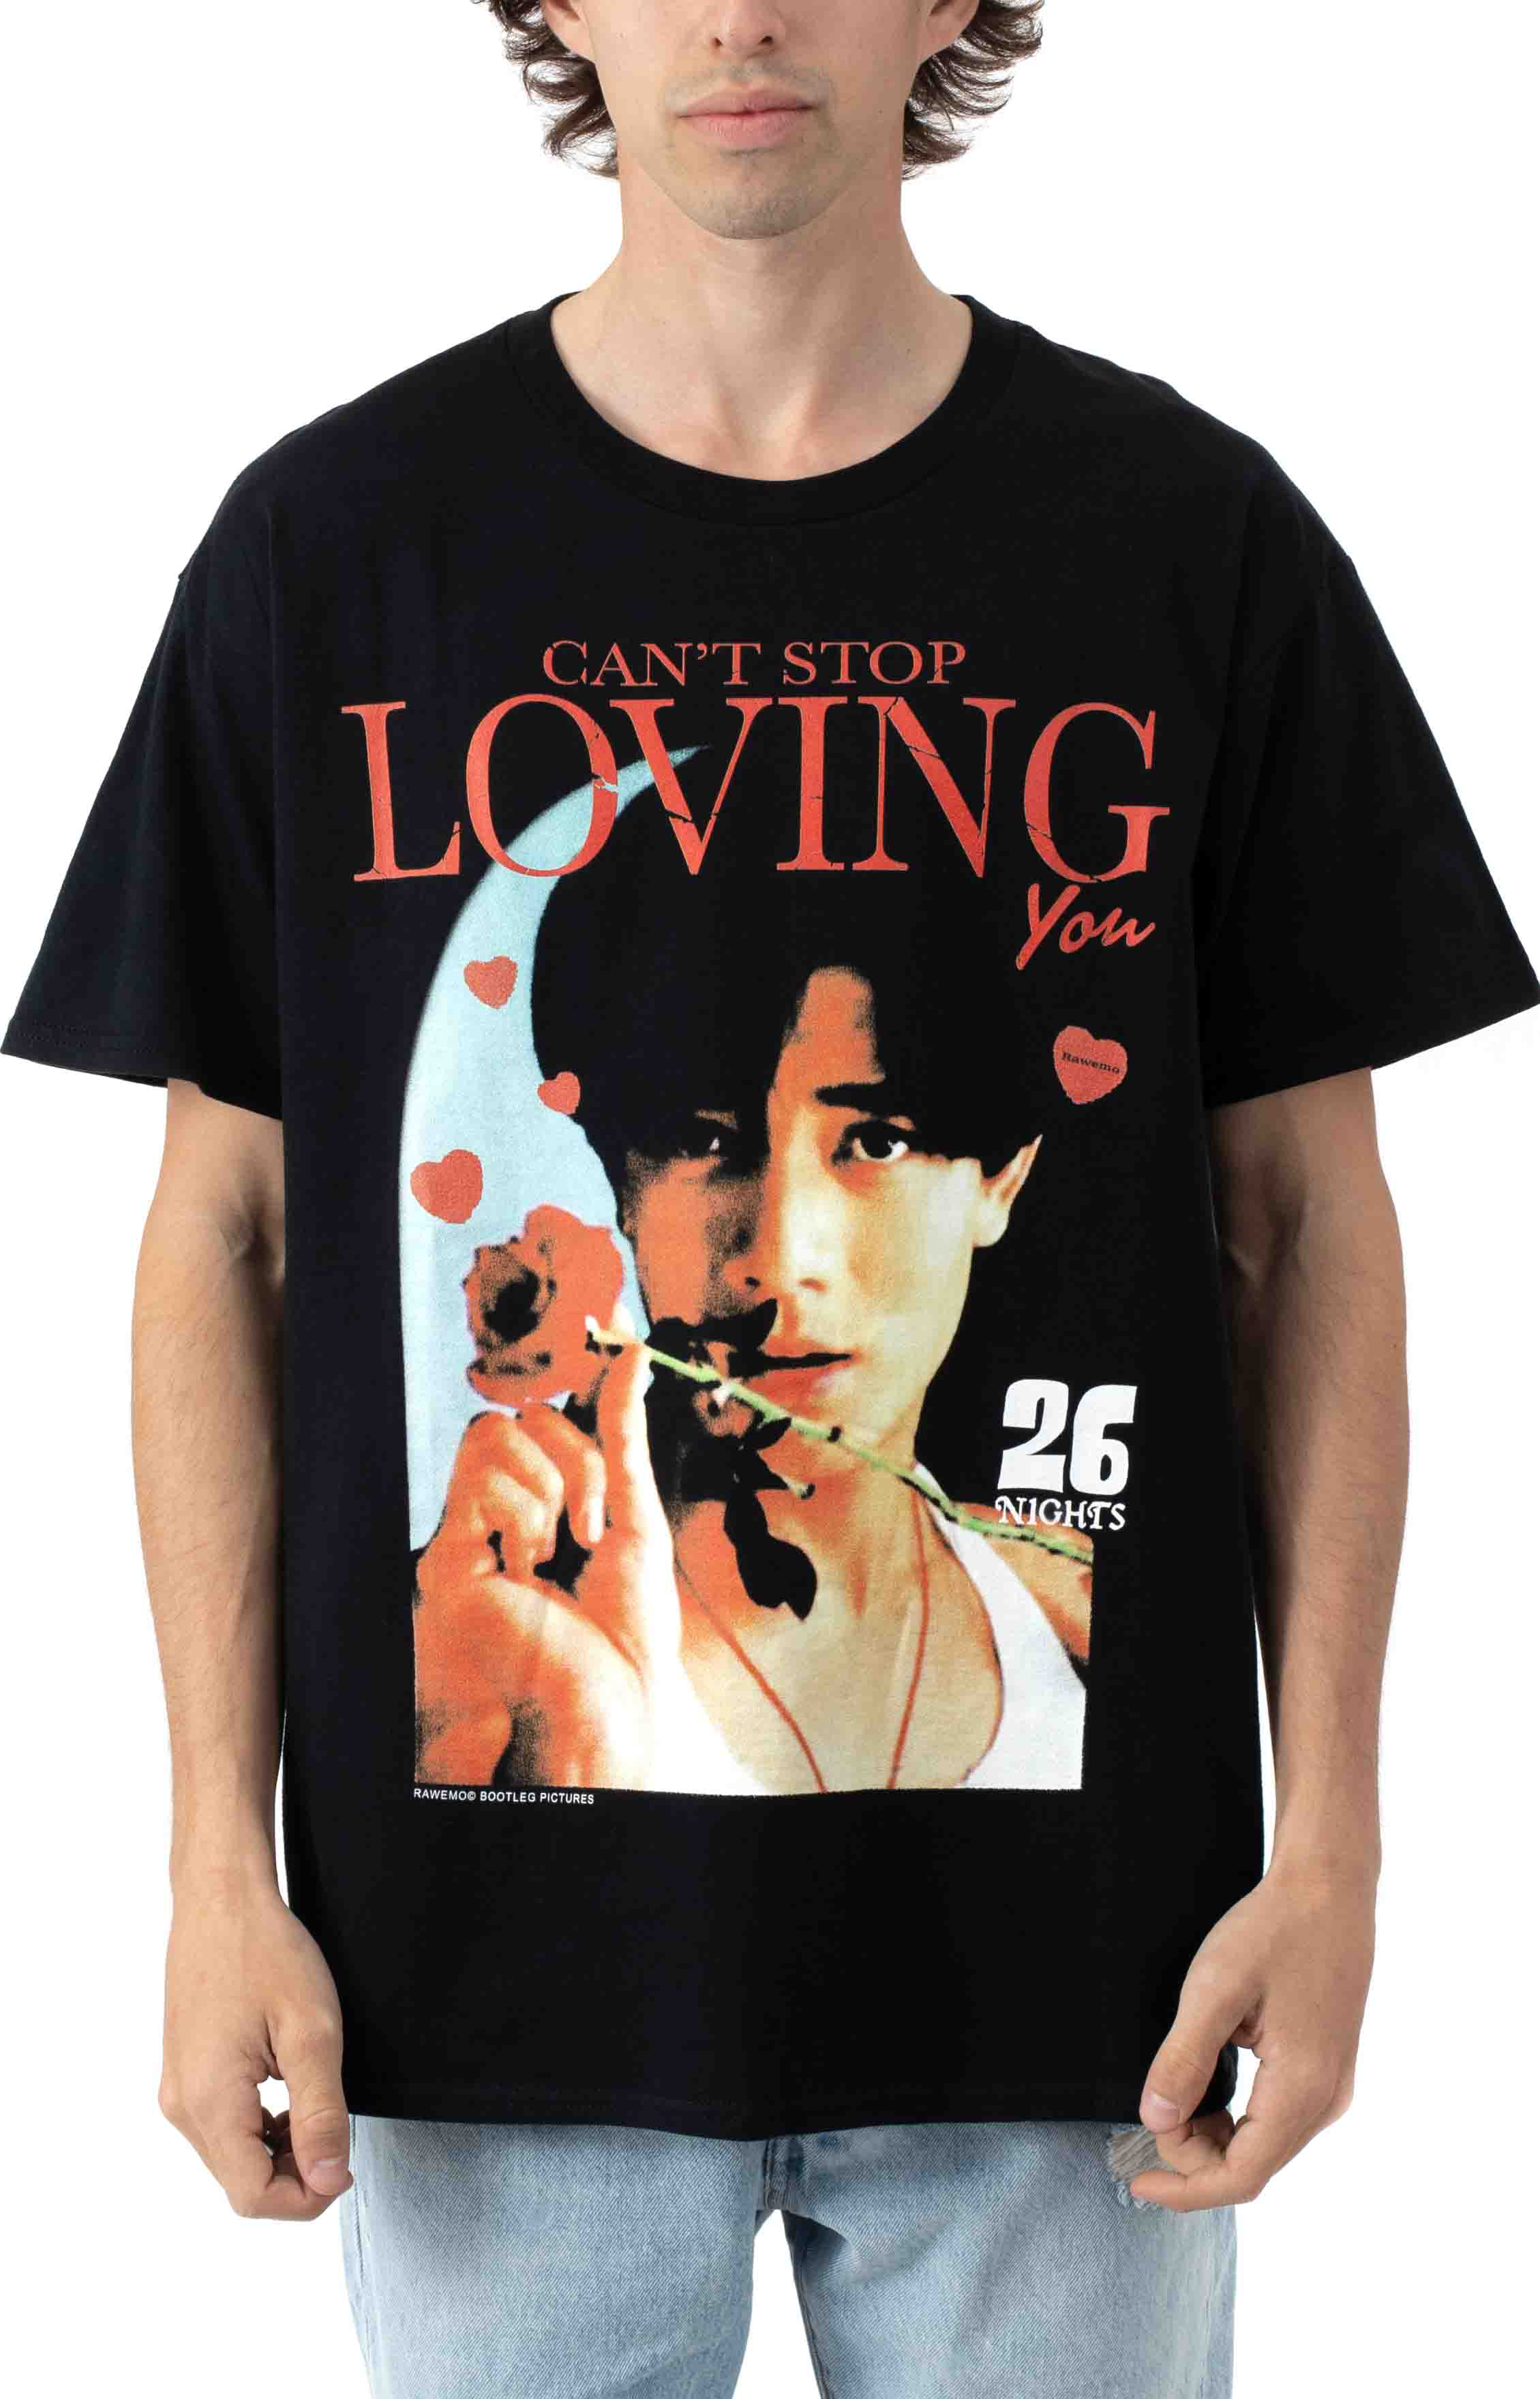 Can't Stop Loving You T-Shirt - Black